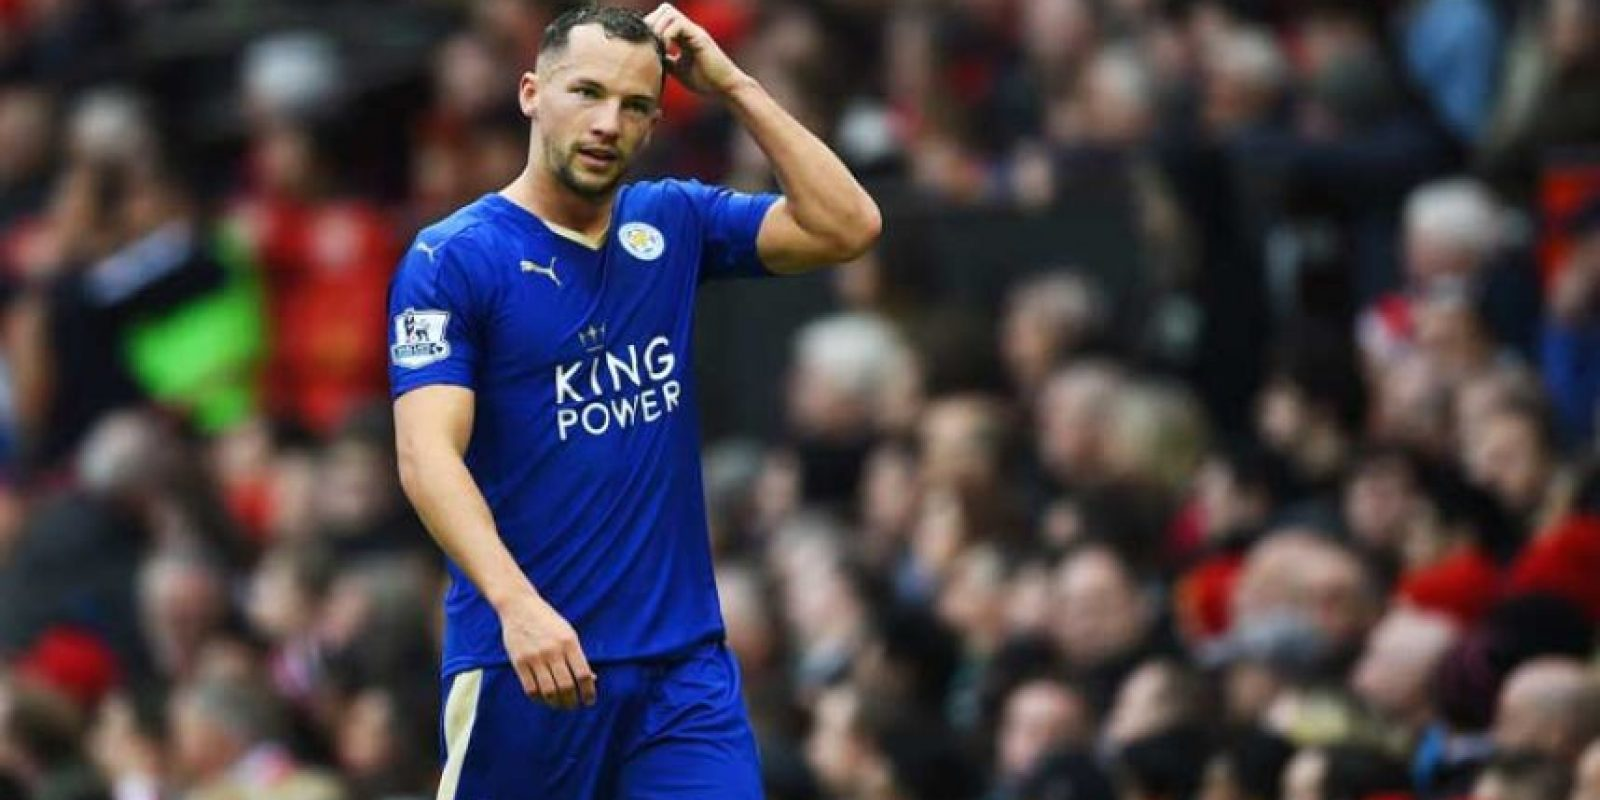 MEDIOCENTRO: Danny Drinkwater Foto:Getty Images